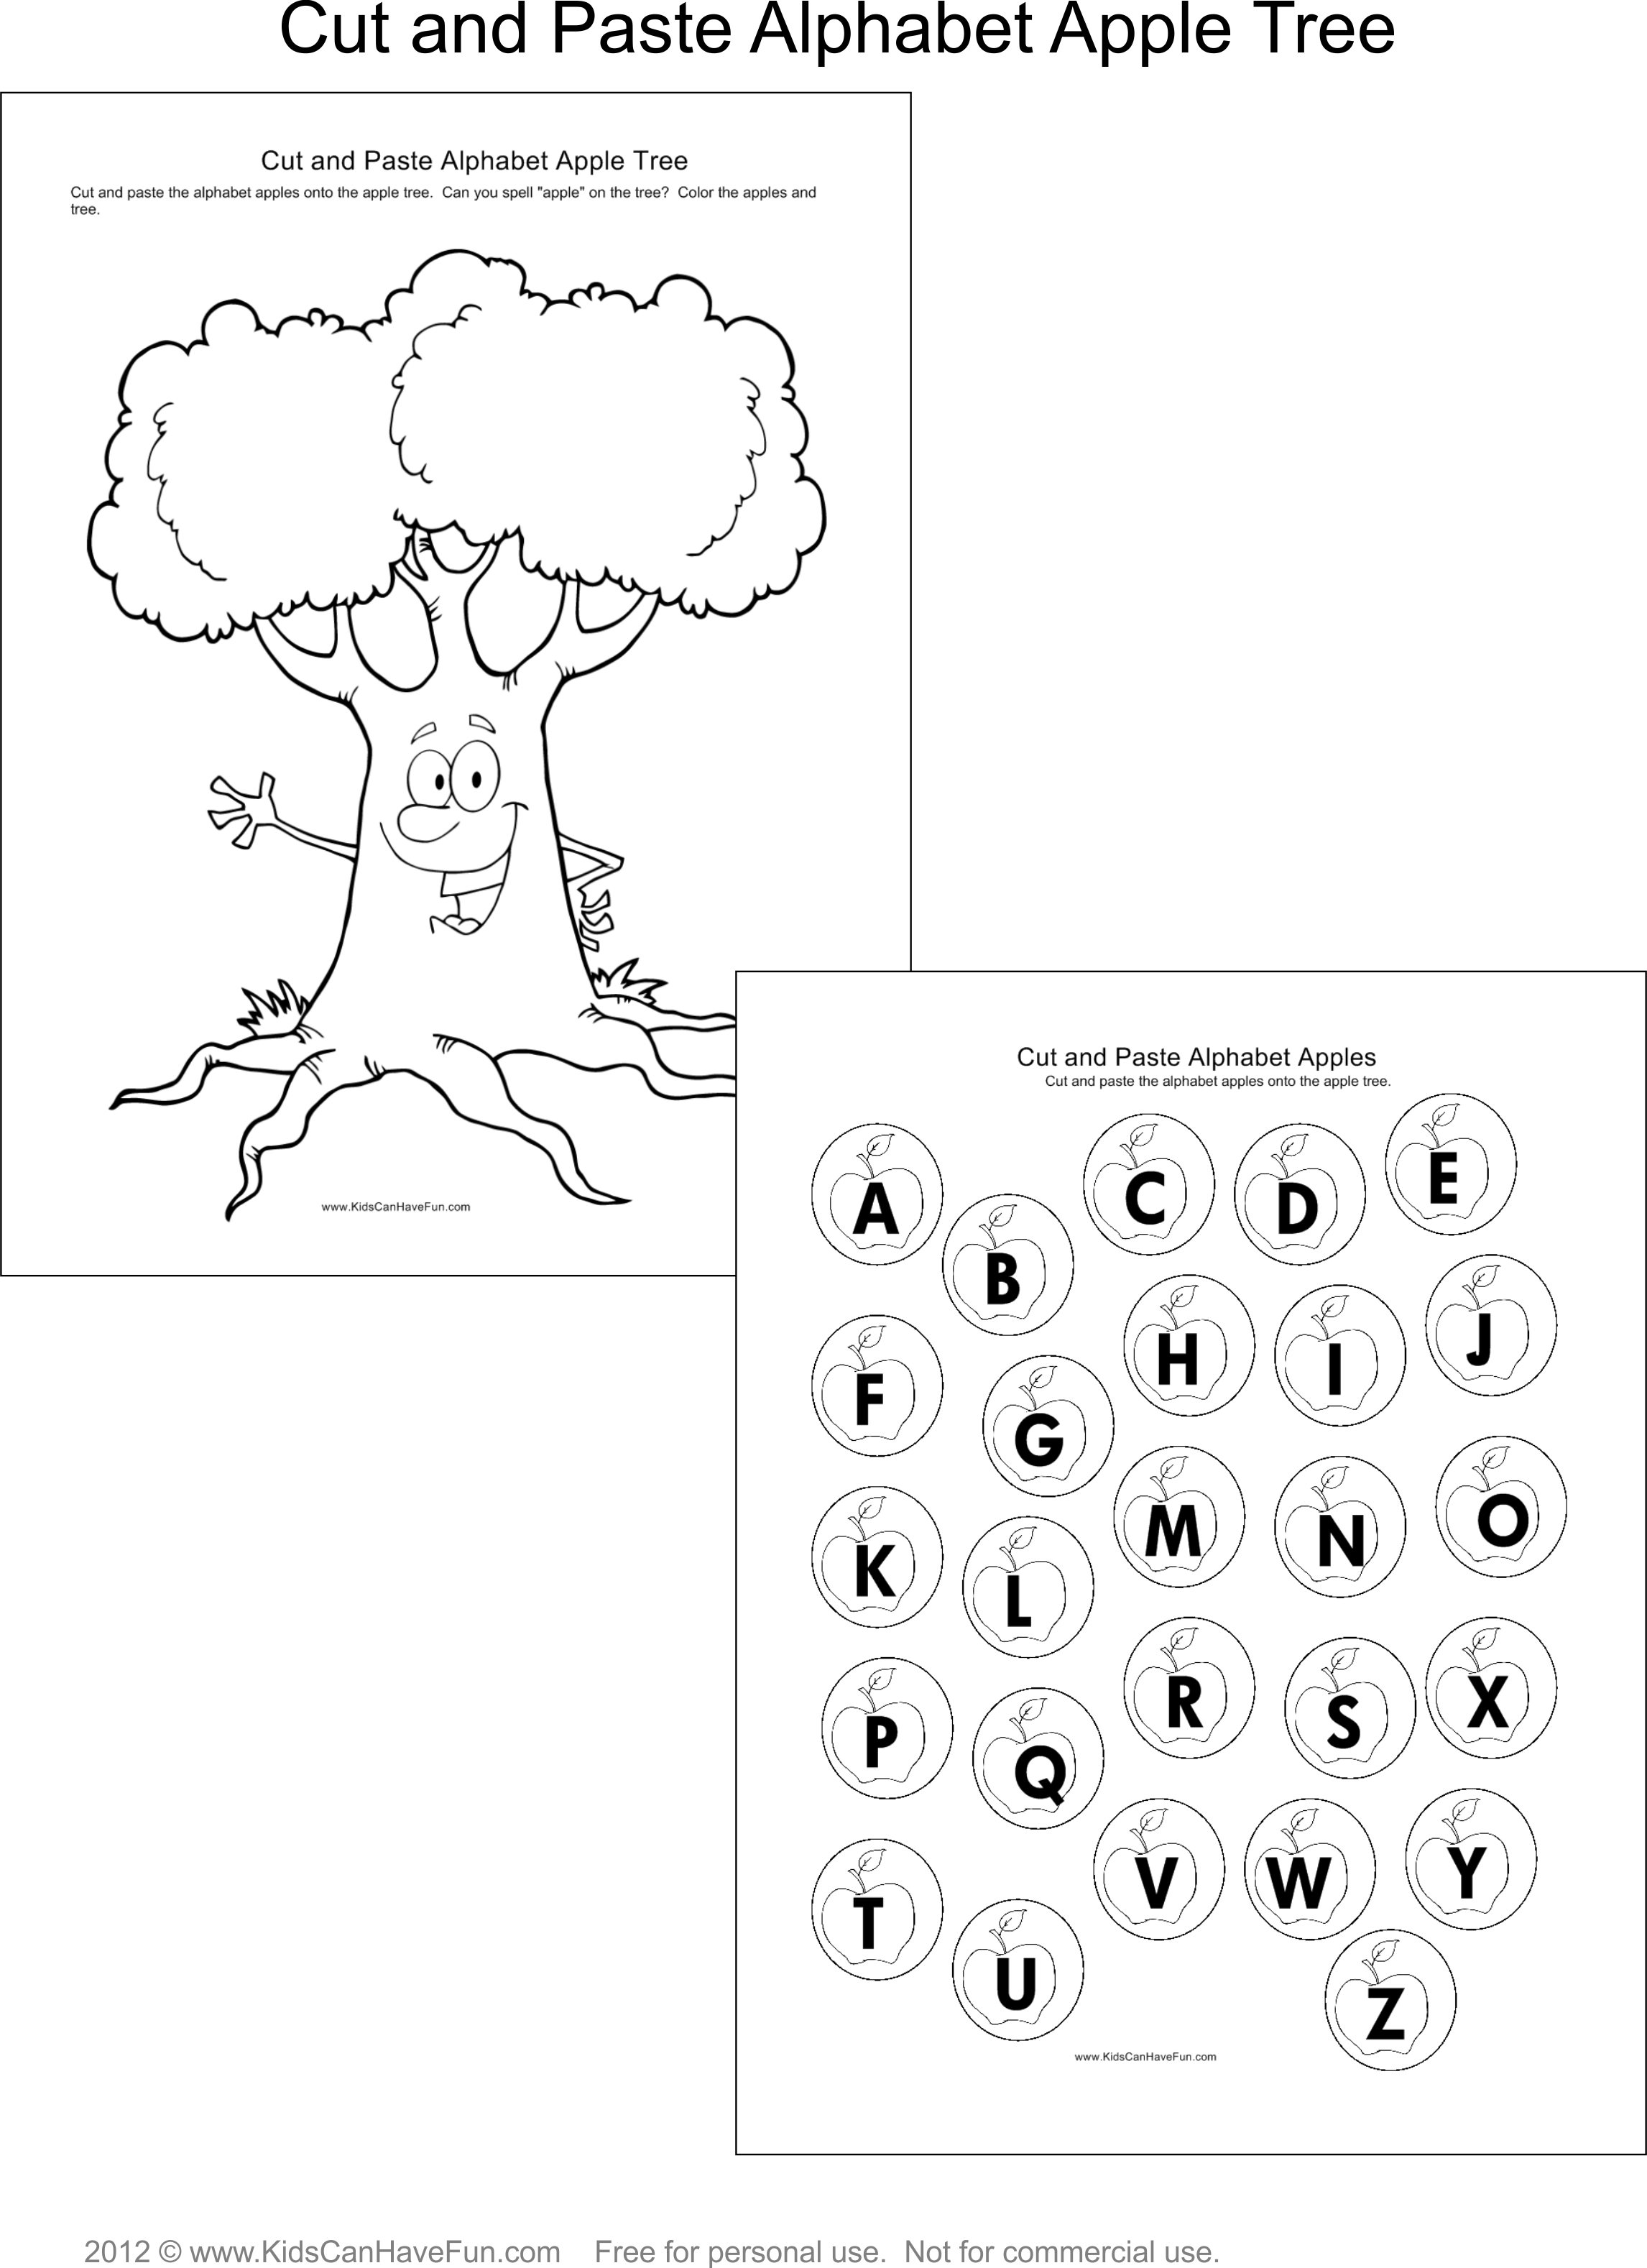 Pin On Cut And Paste Worksheets Activities For Preschool [ 3156 x 2292 Pixel ]